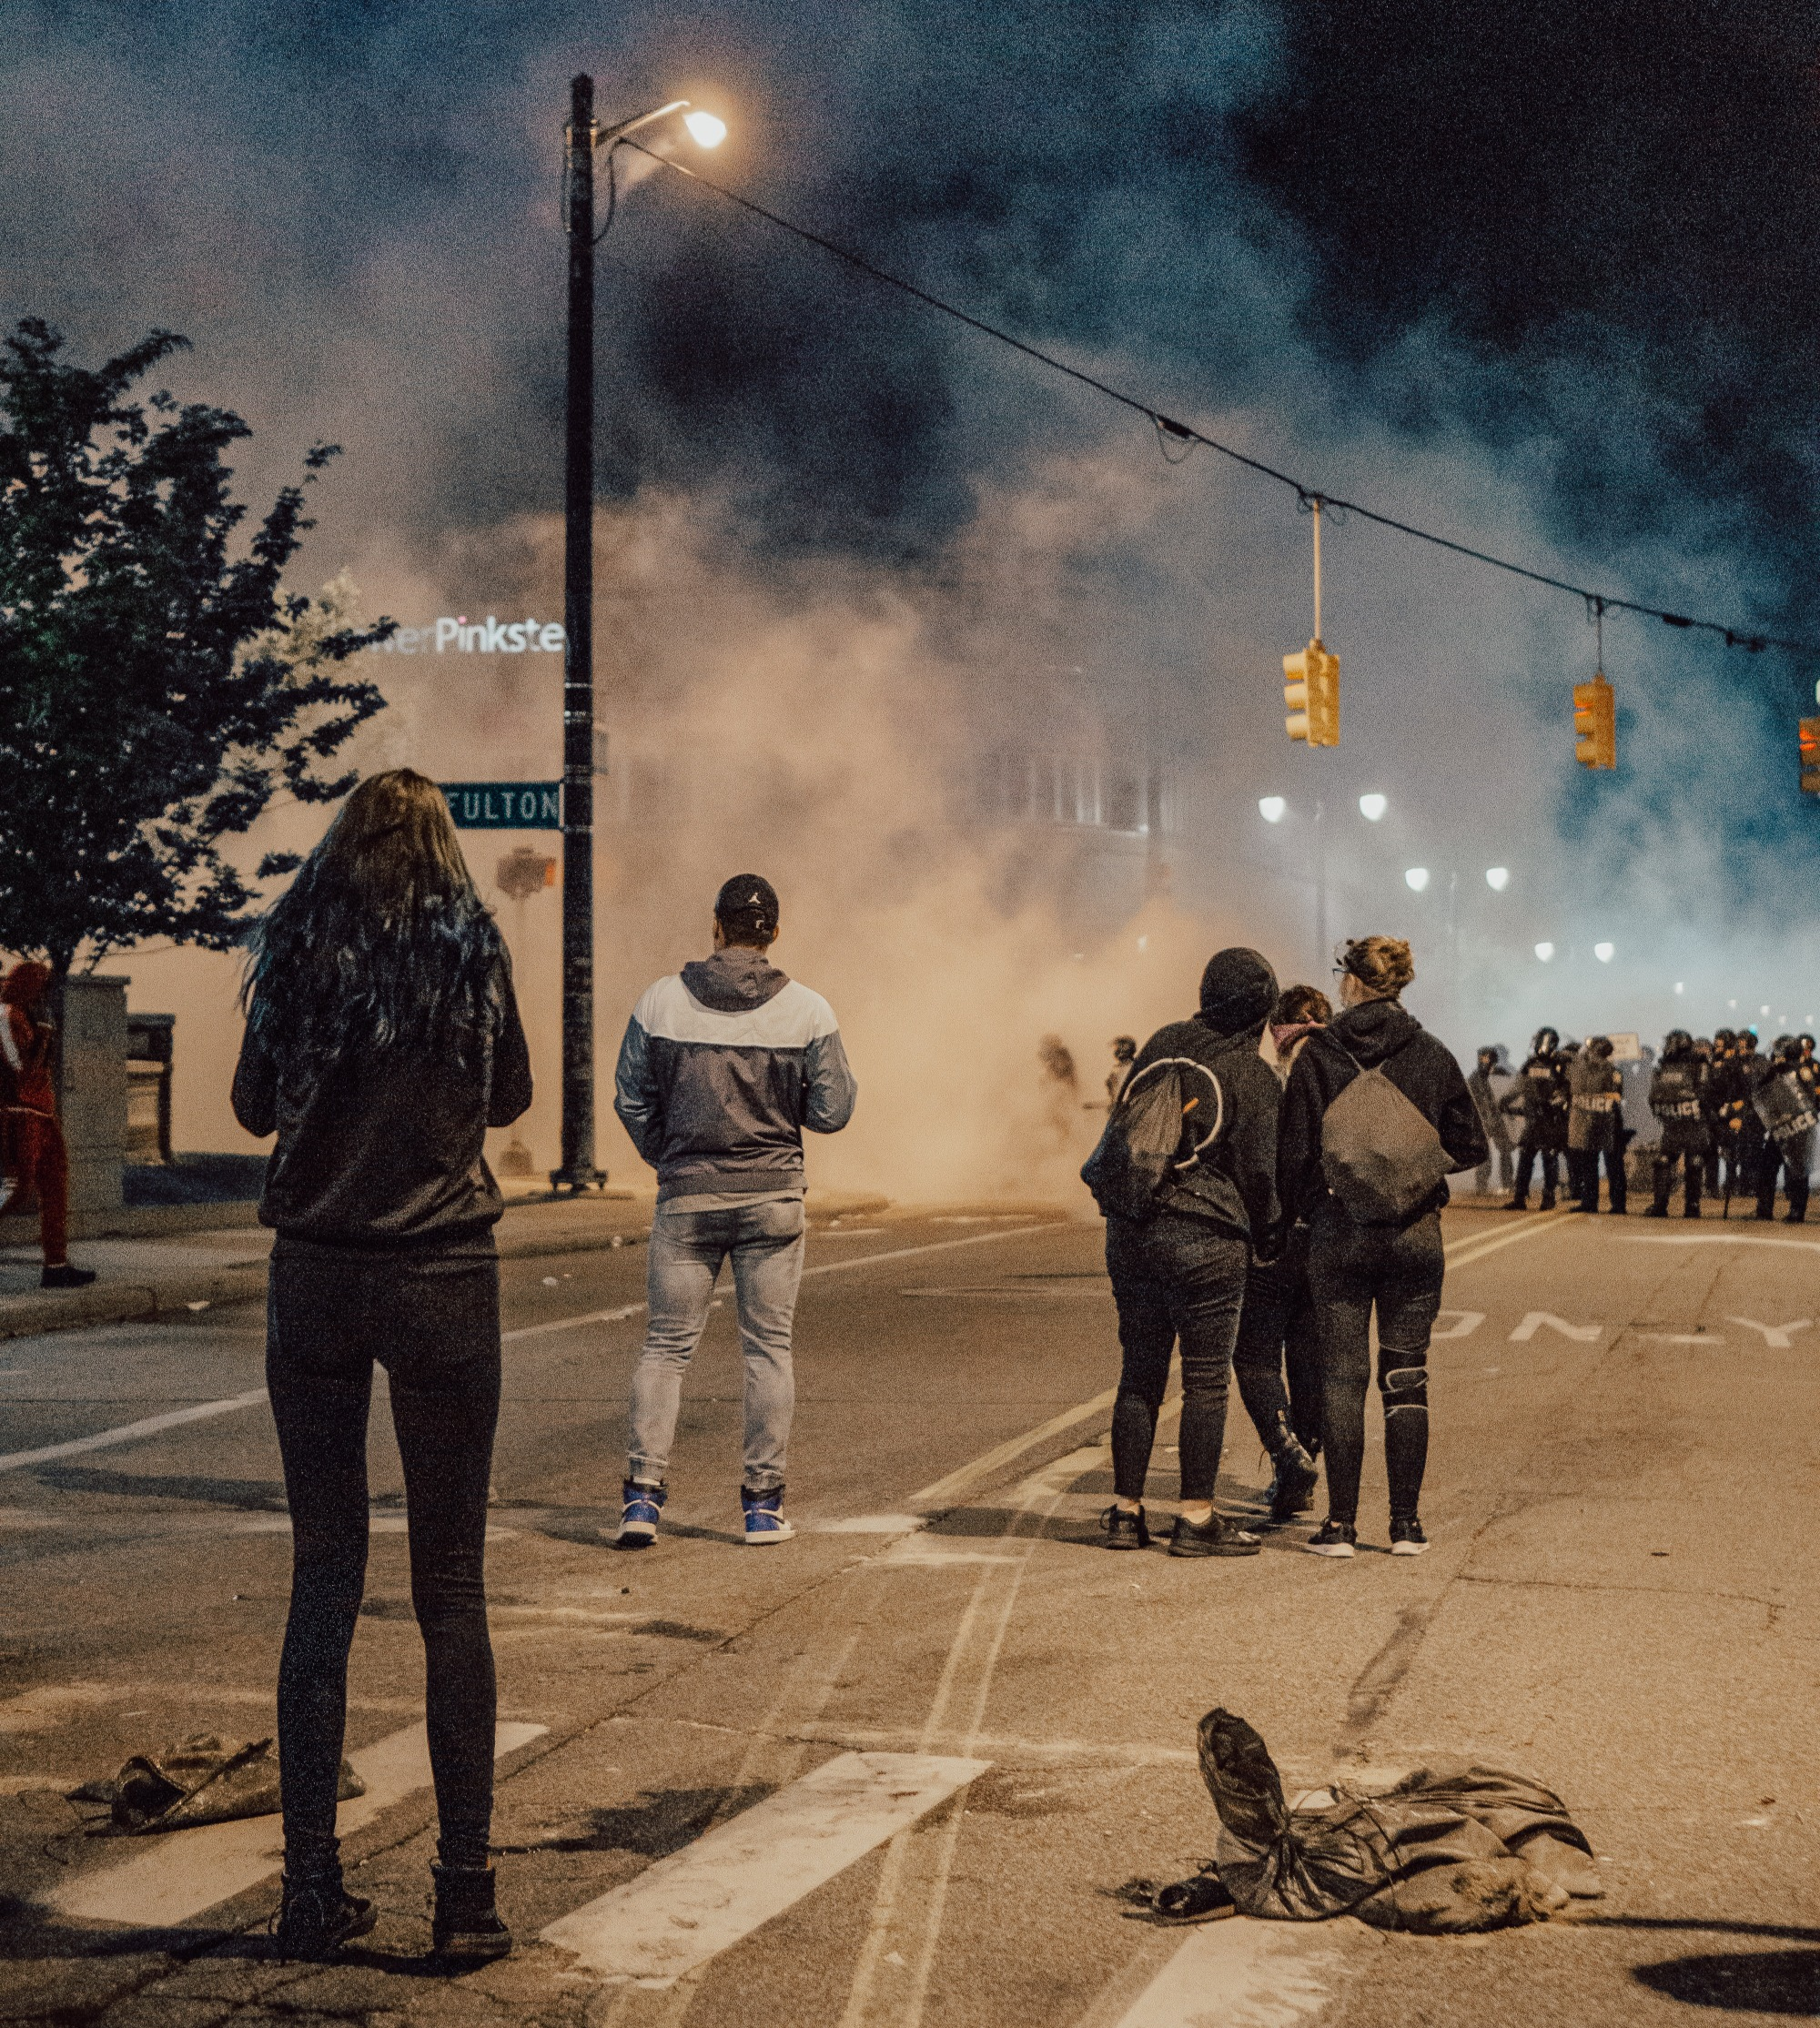 A Justice ForGeorge Floyd protest in Grand Rapids, MI: The city street is completely empty except for a handful of protestors standing in the road and some disgarded clothing on the ground. The air is thick with tear gas so that you can